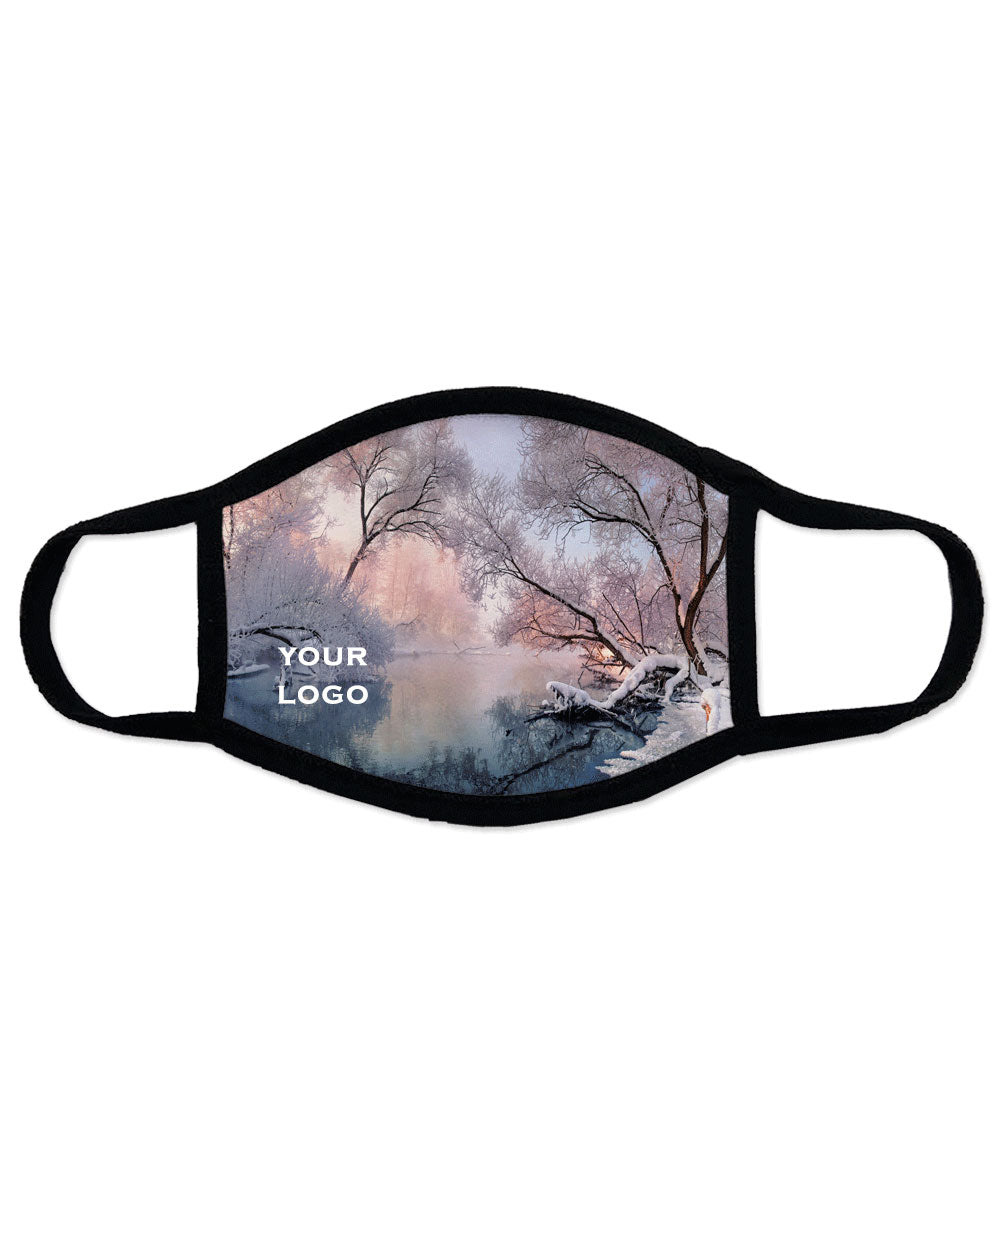 Winter scenery Face Mask,Reusable, Washable, Breathable